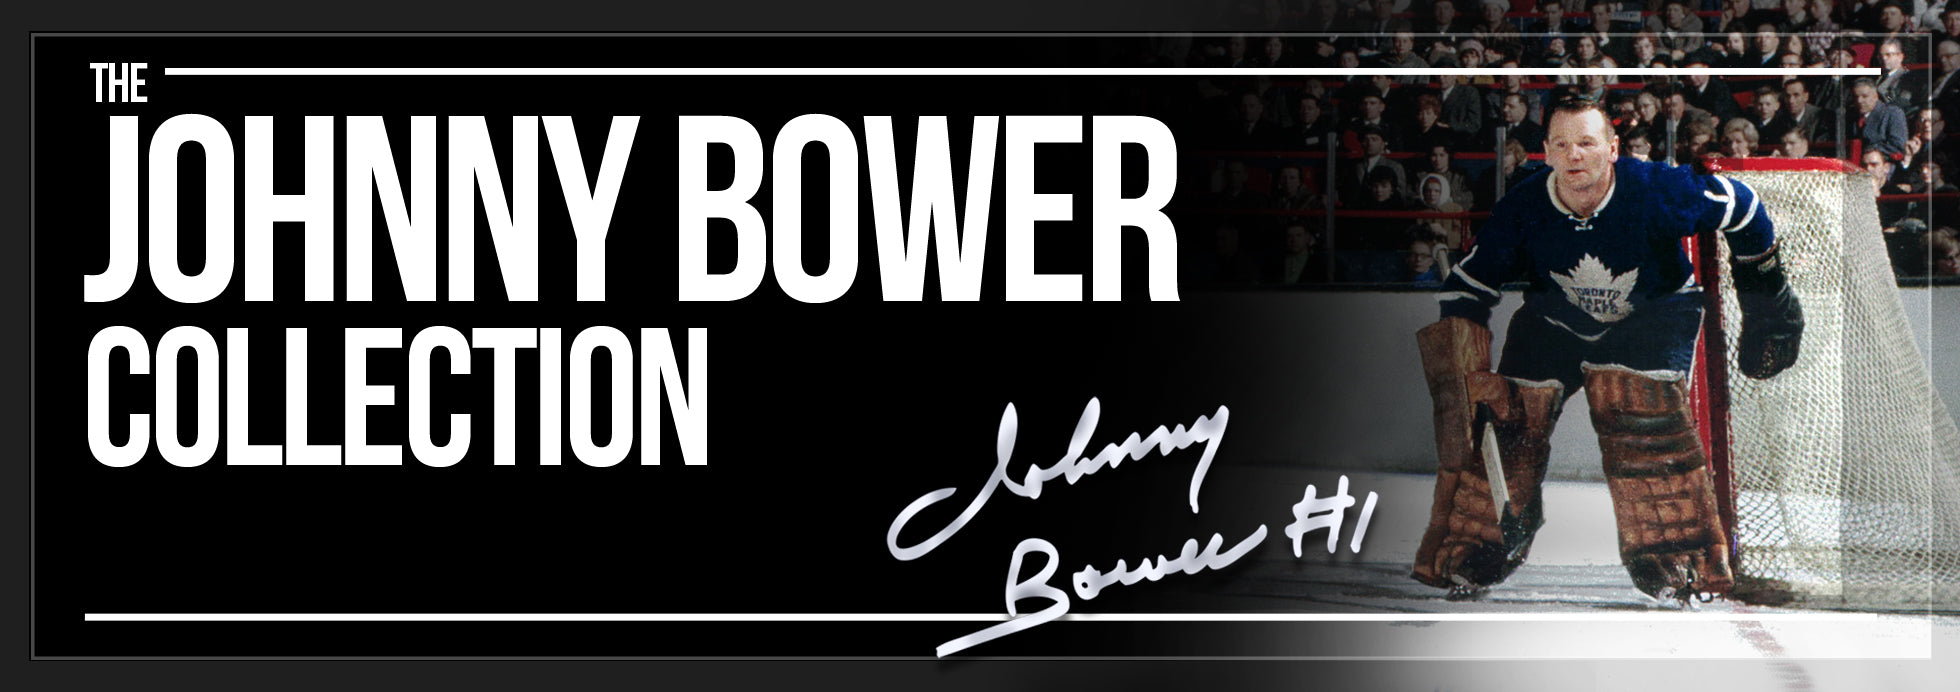 Johnny Bower Collection Banner